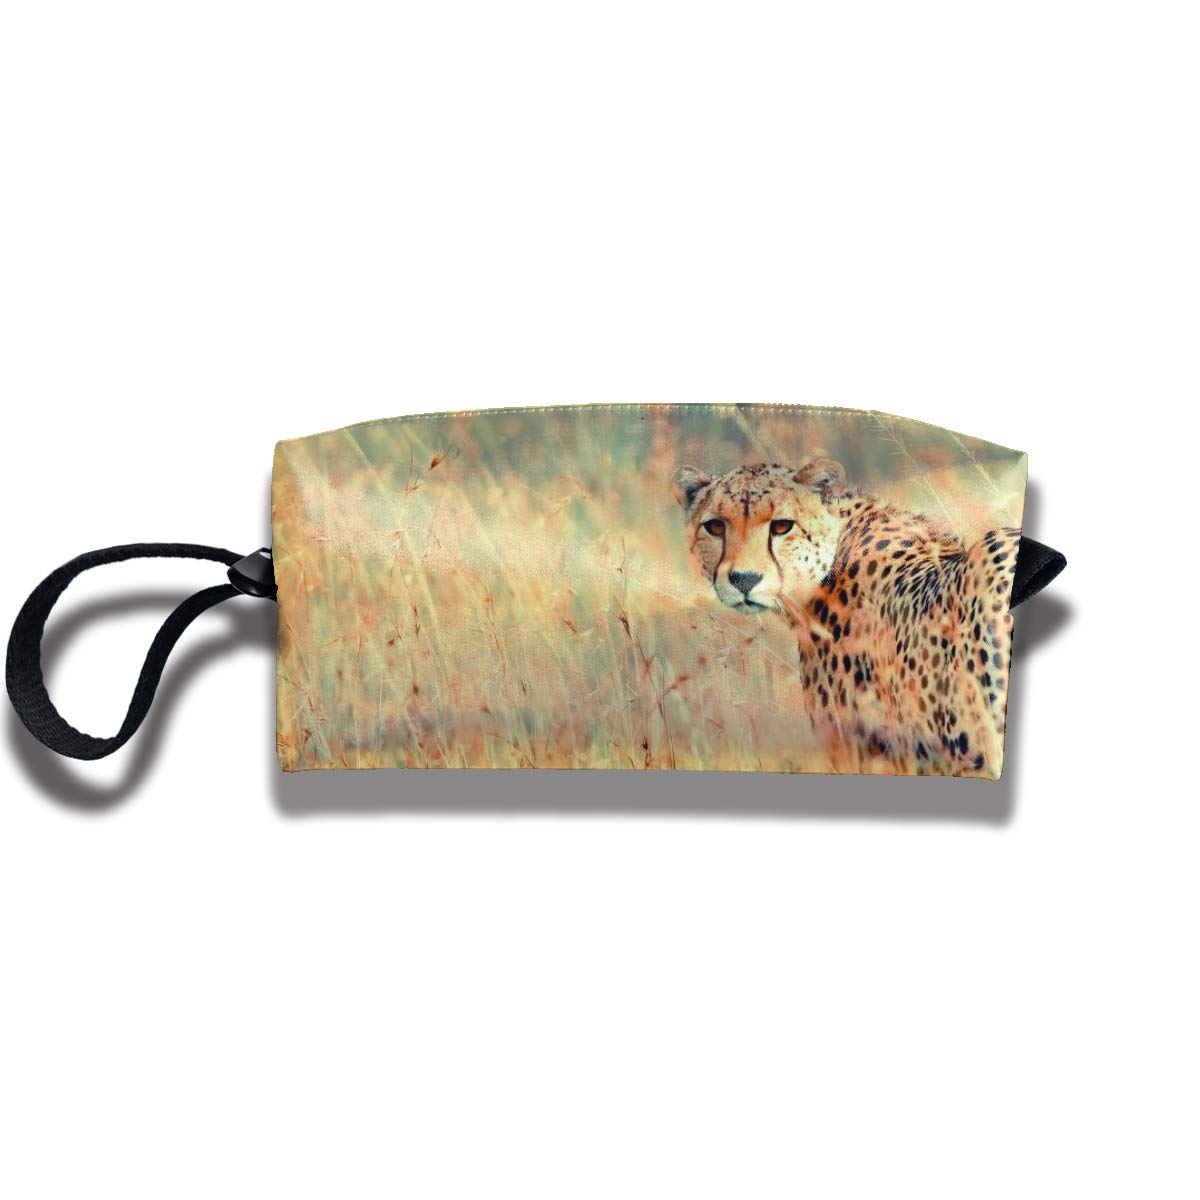 Travel Toiletry Pouch Leopard Shaving Kit Make-up Bag with Handle,Portable Organizer Receive Cosmetic Storage Case for Women and Men